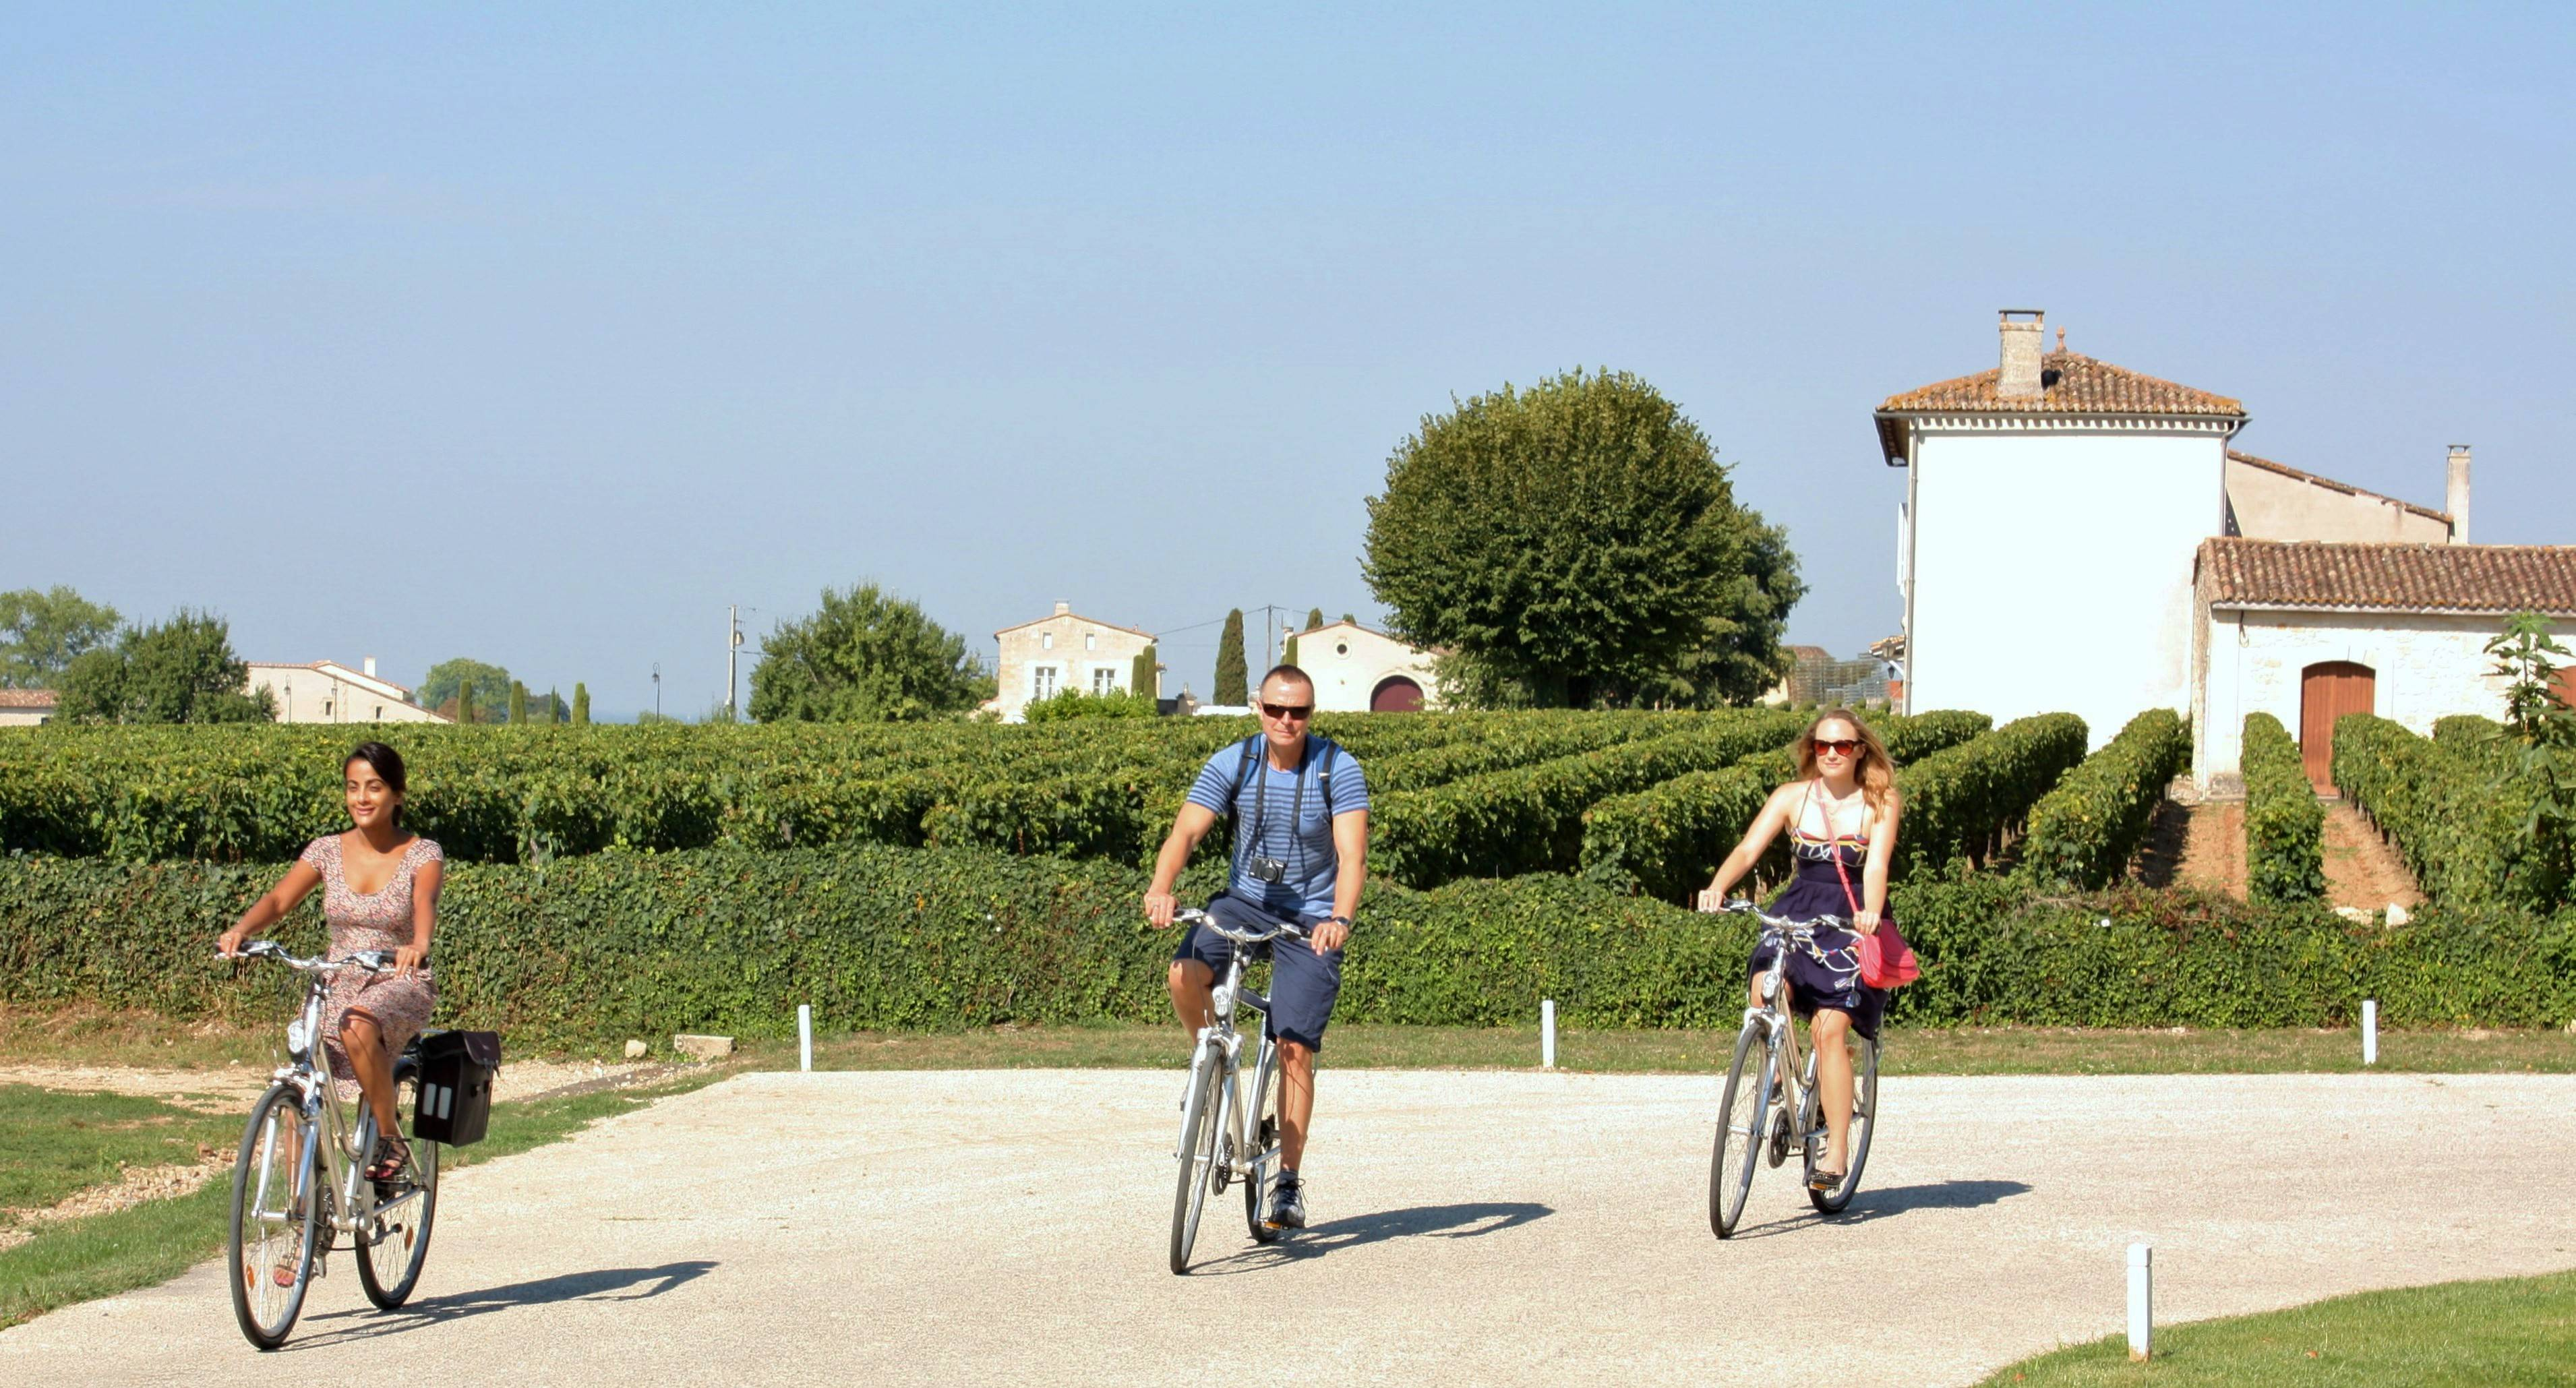 Charmaine Noronha, left, and two other passengers from Crystal Serenity take a bike tour during a port call in St.-Emilion in the wine region of France. Excursions like bike tours are popular among cruisers who enjoy active adventures in port, and there are a variety of similar adventures to choose from.